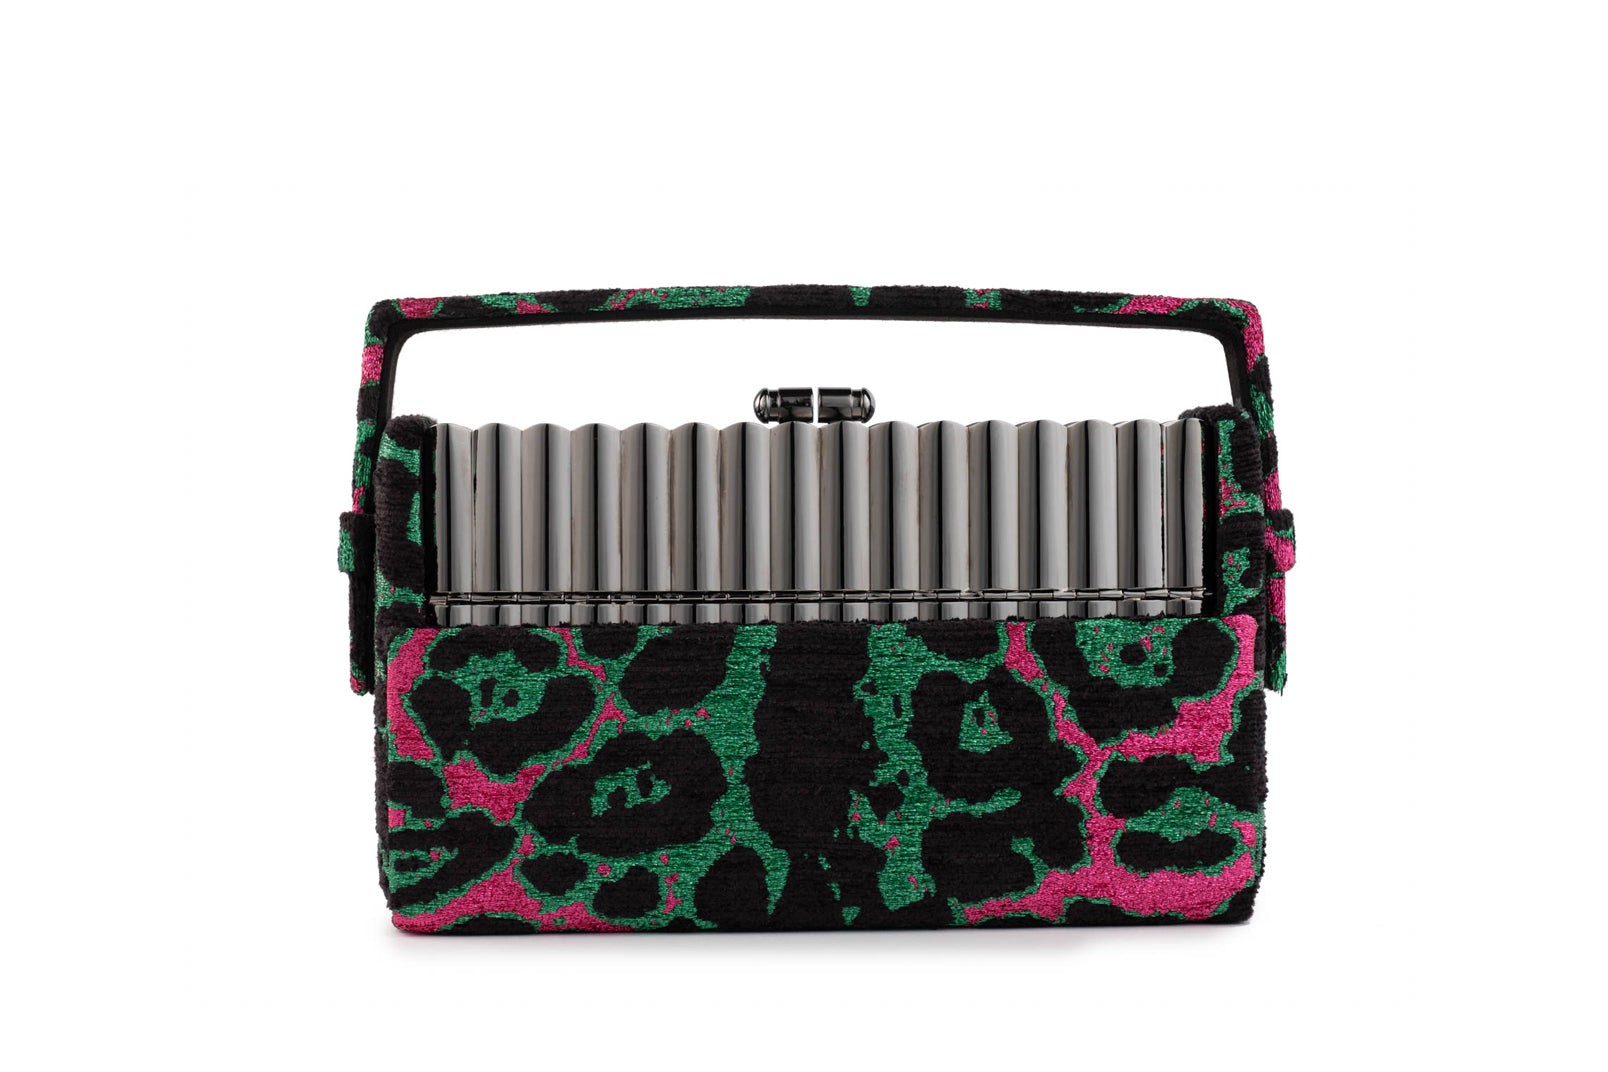 Gunmetal Tubular Xenon Minaudière with Pink and Green Leopard Metallic Lurex Chenille Case